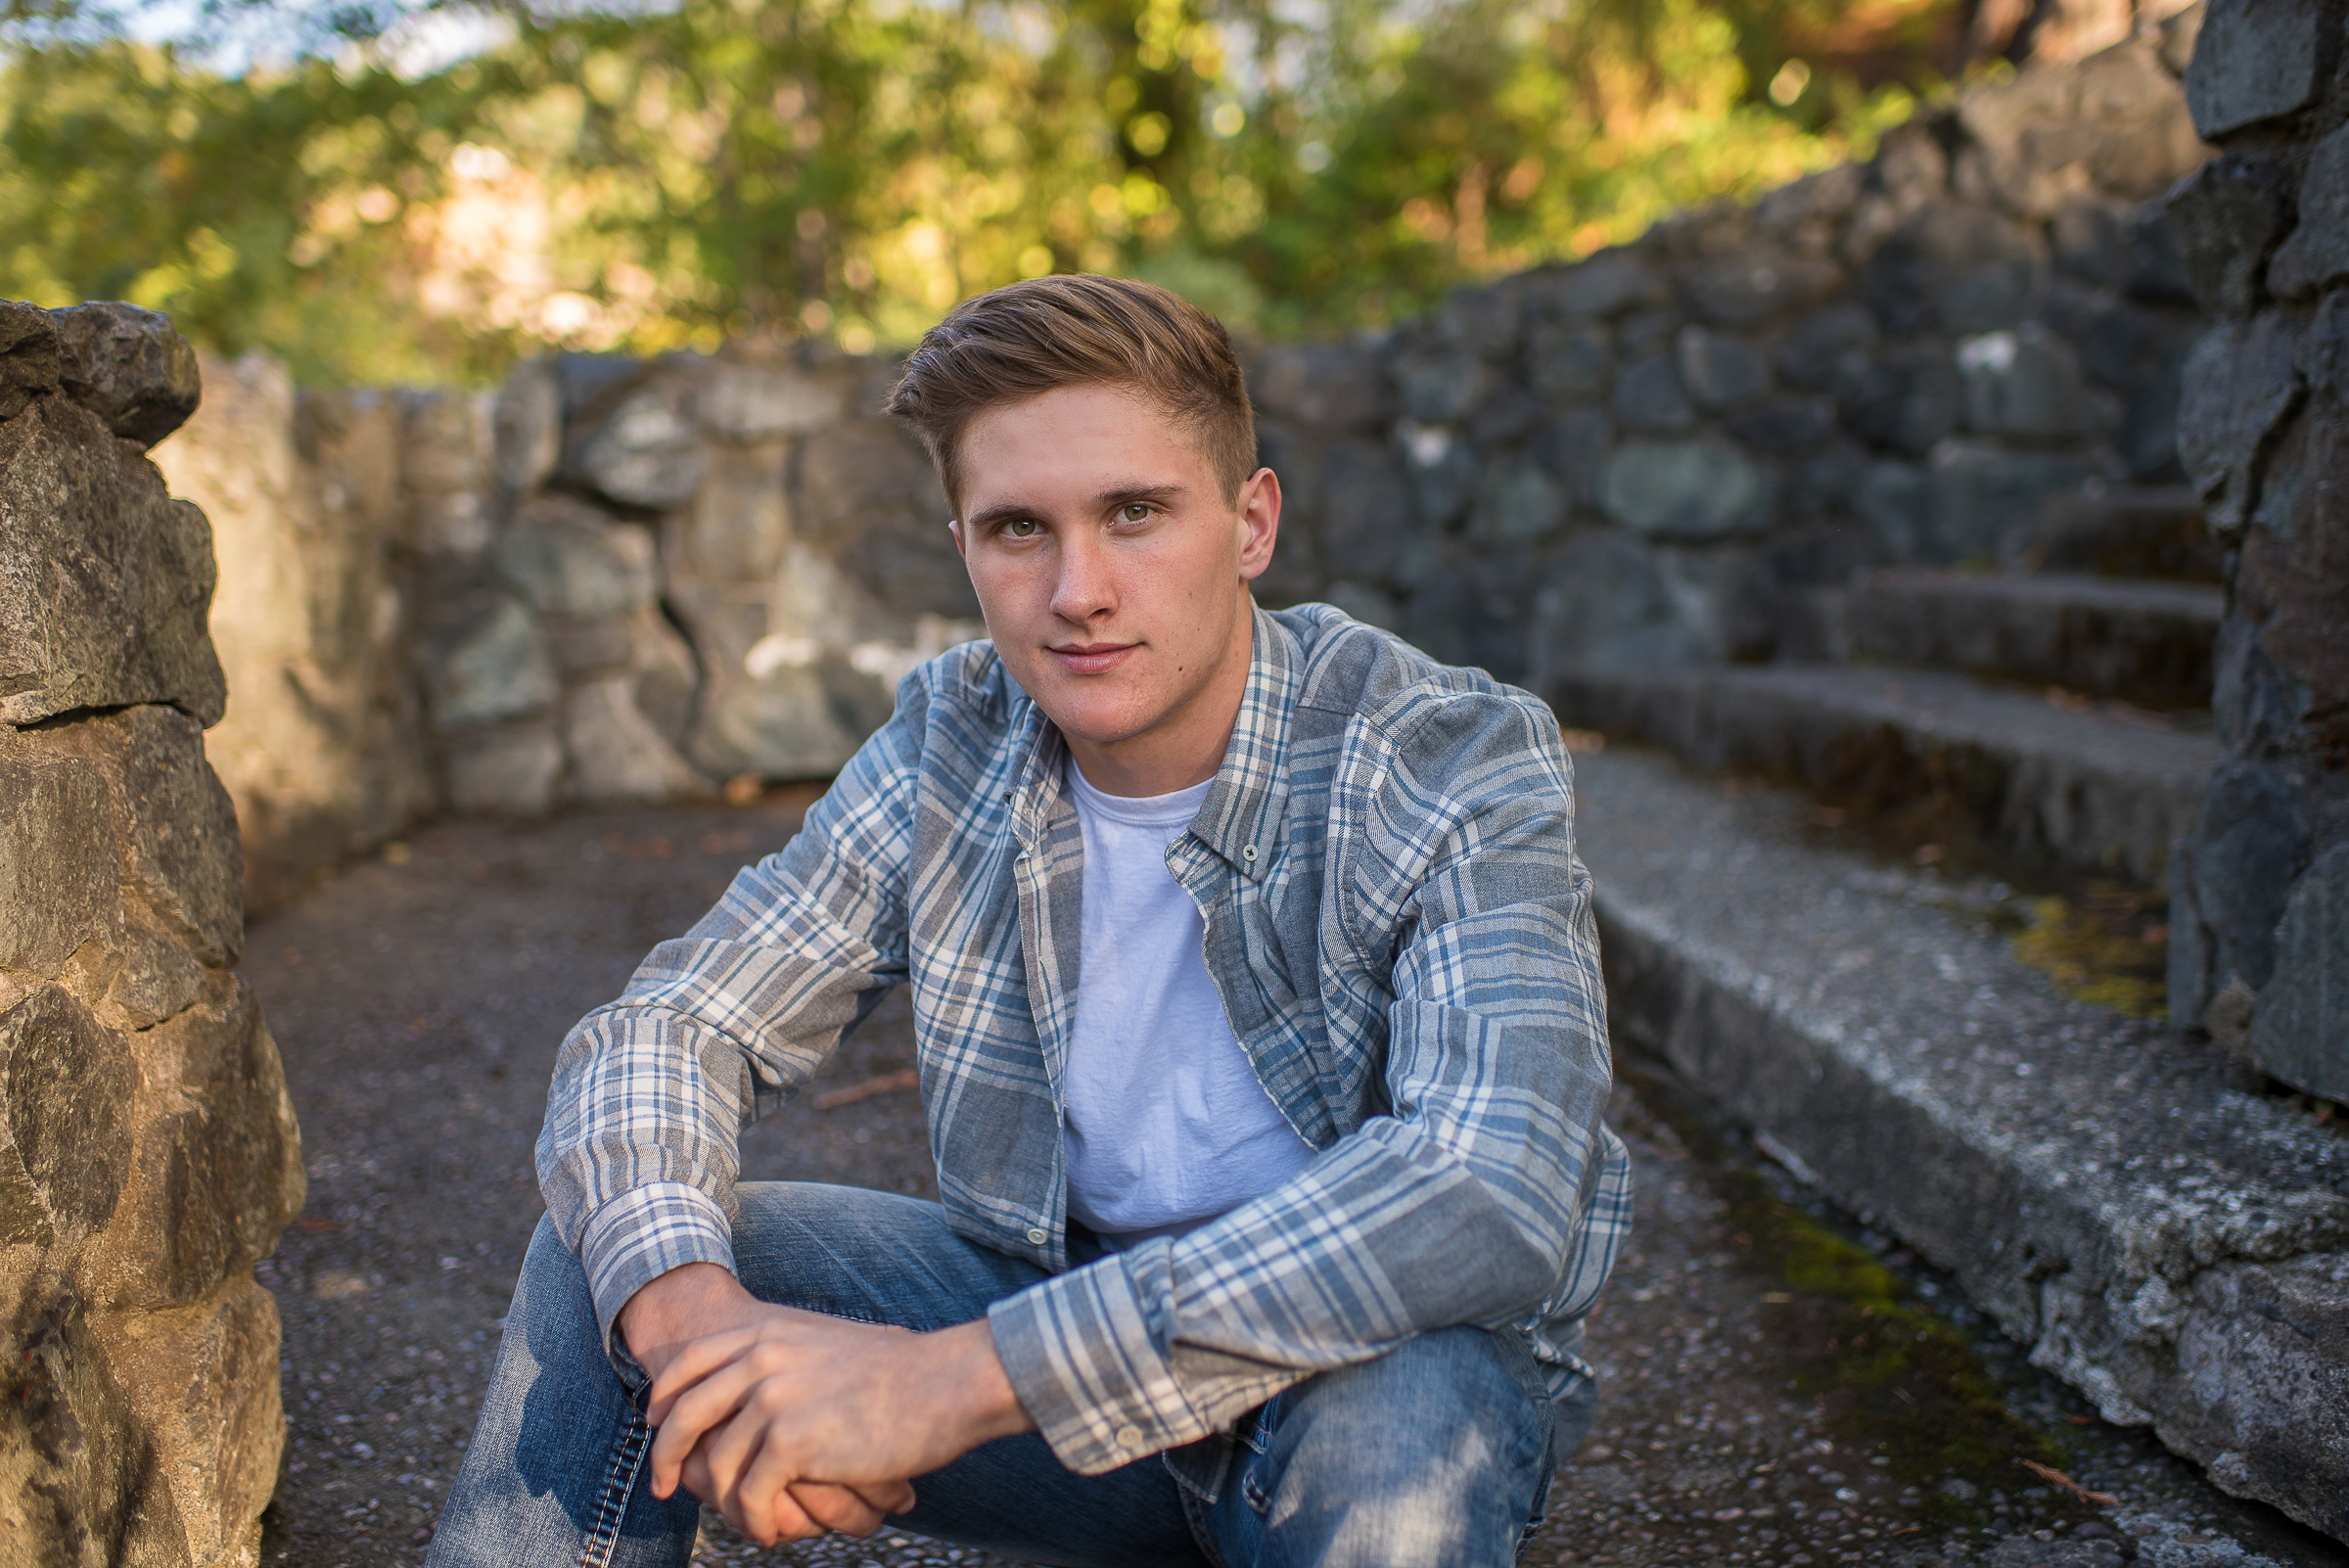 Cody's-Benbow Inn-Humboldt County-Senior Session-Parky's Pics_-13.JPG